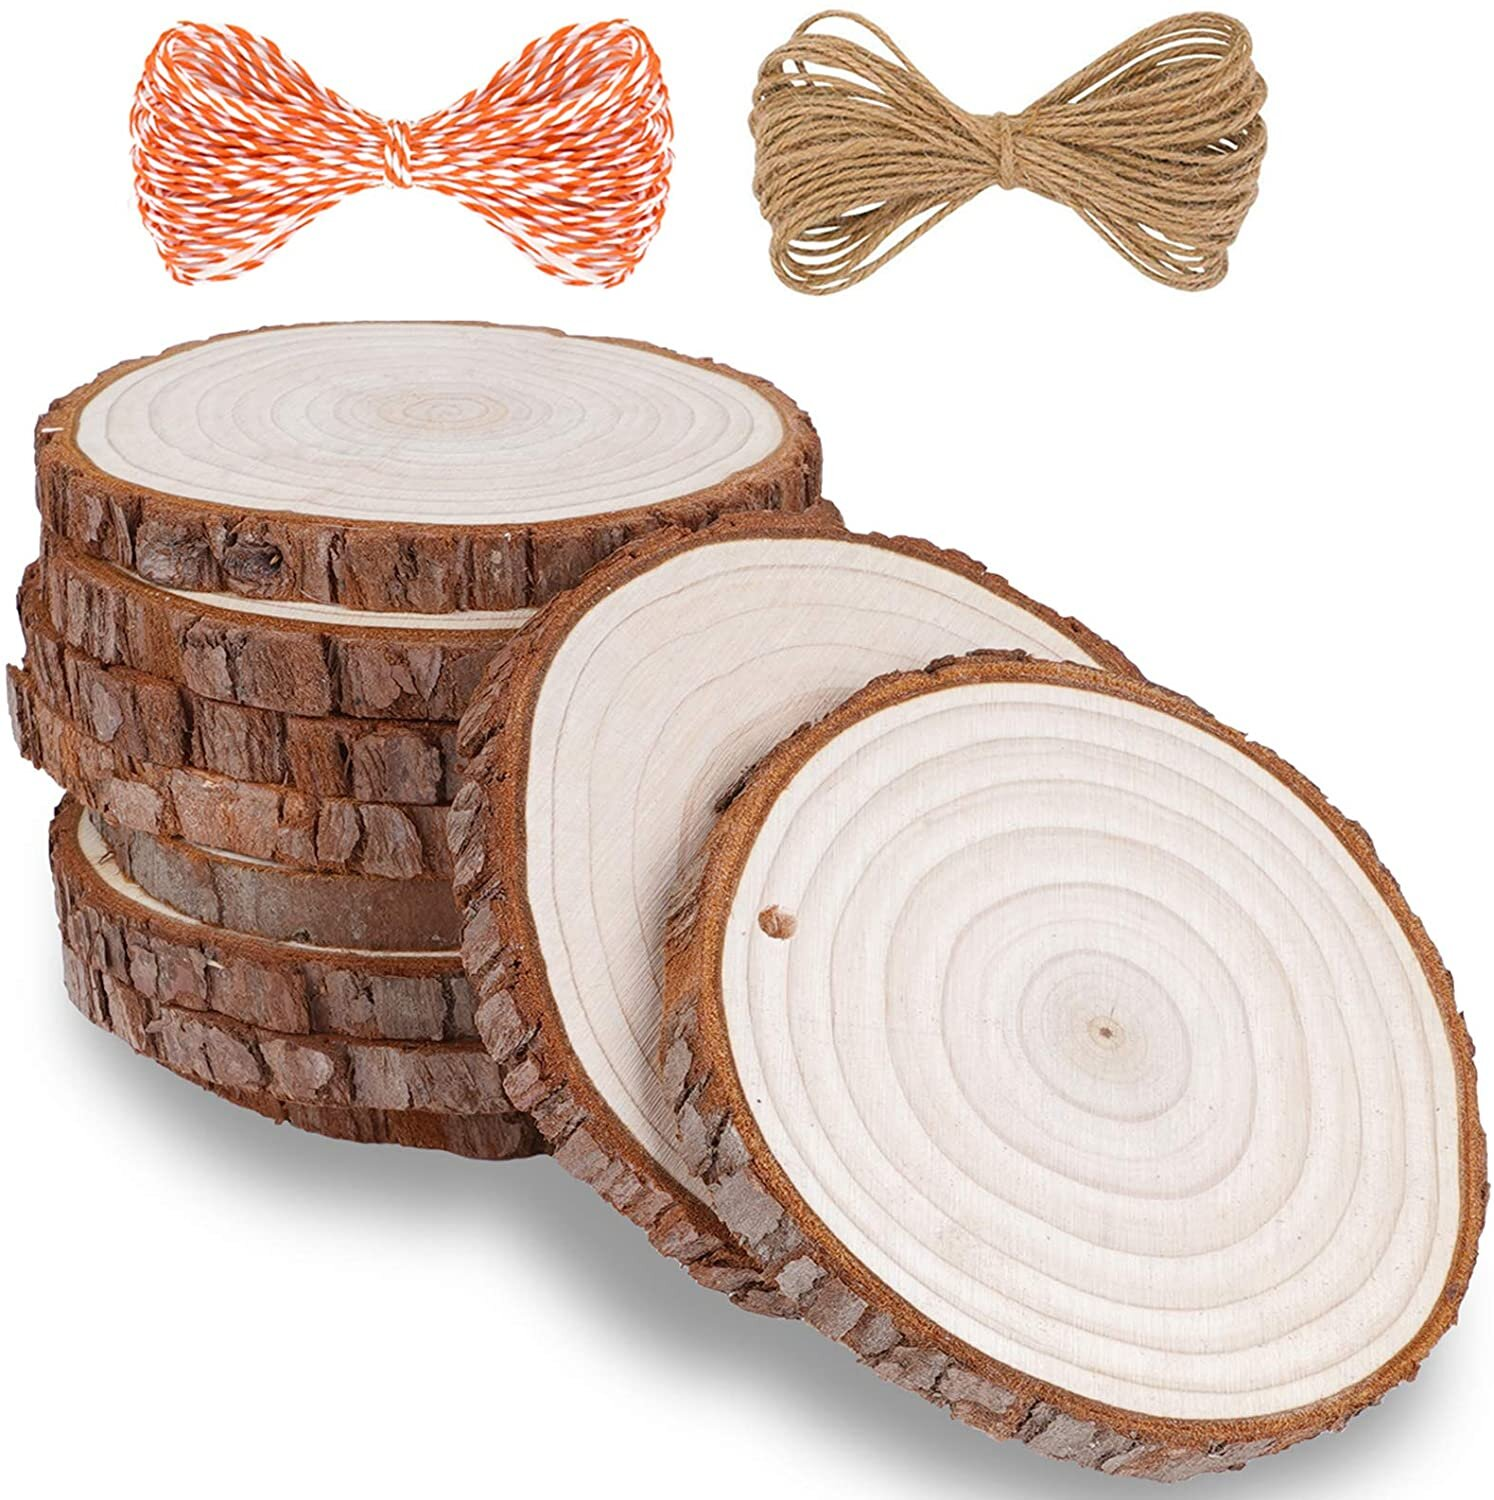 Wood Slices Crafting Kit.jpg